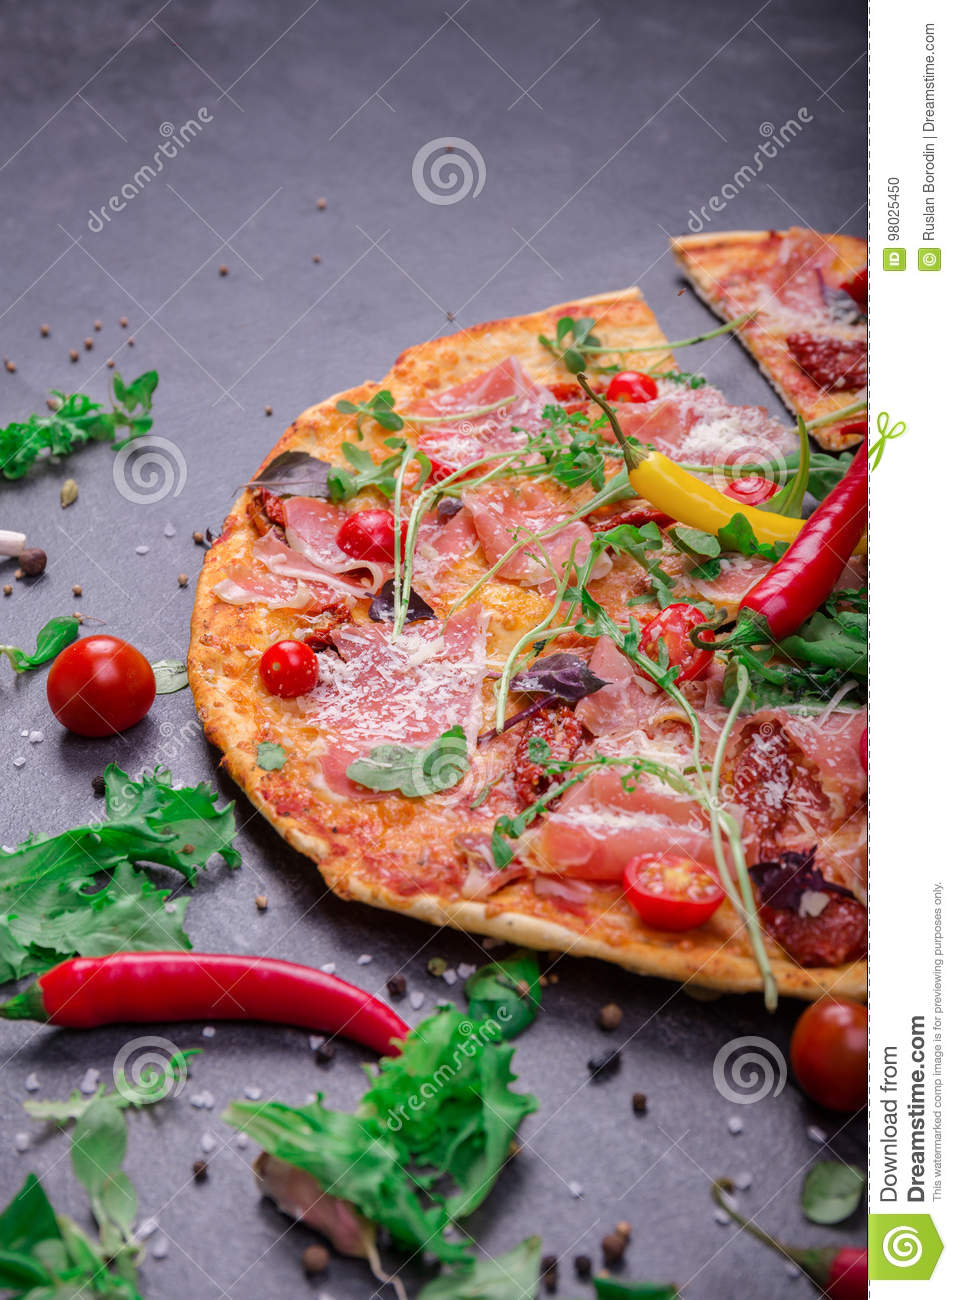 A close-up of hot margarita pizza on a dark background. Cut Italian pizza with vegetables and meat. Copy space.